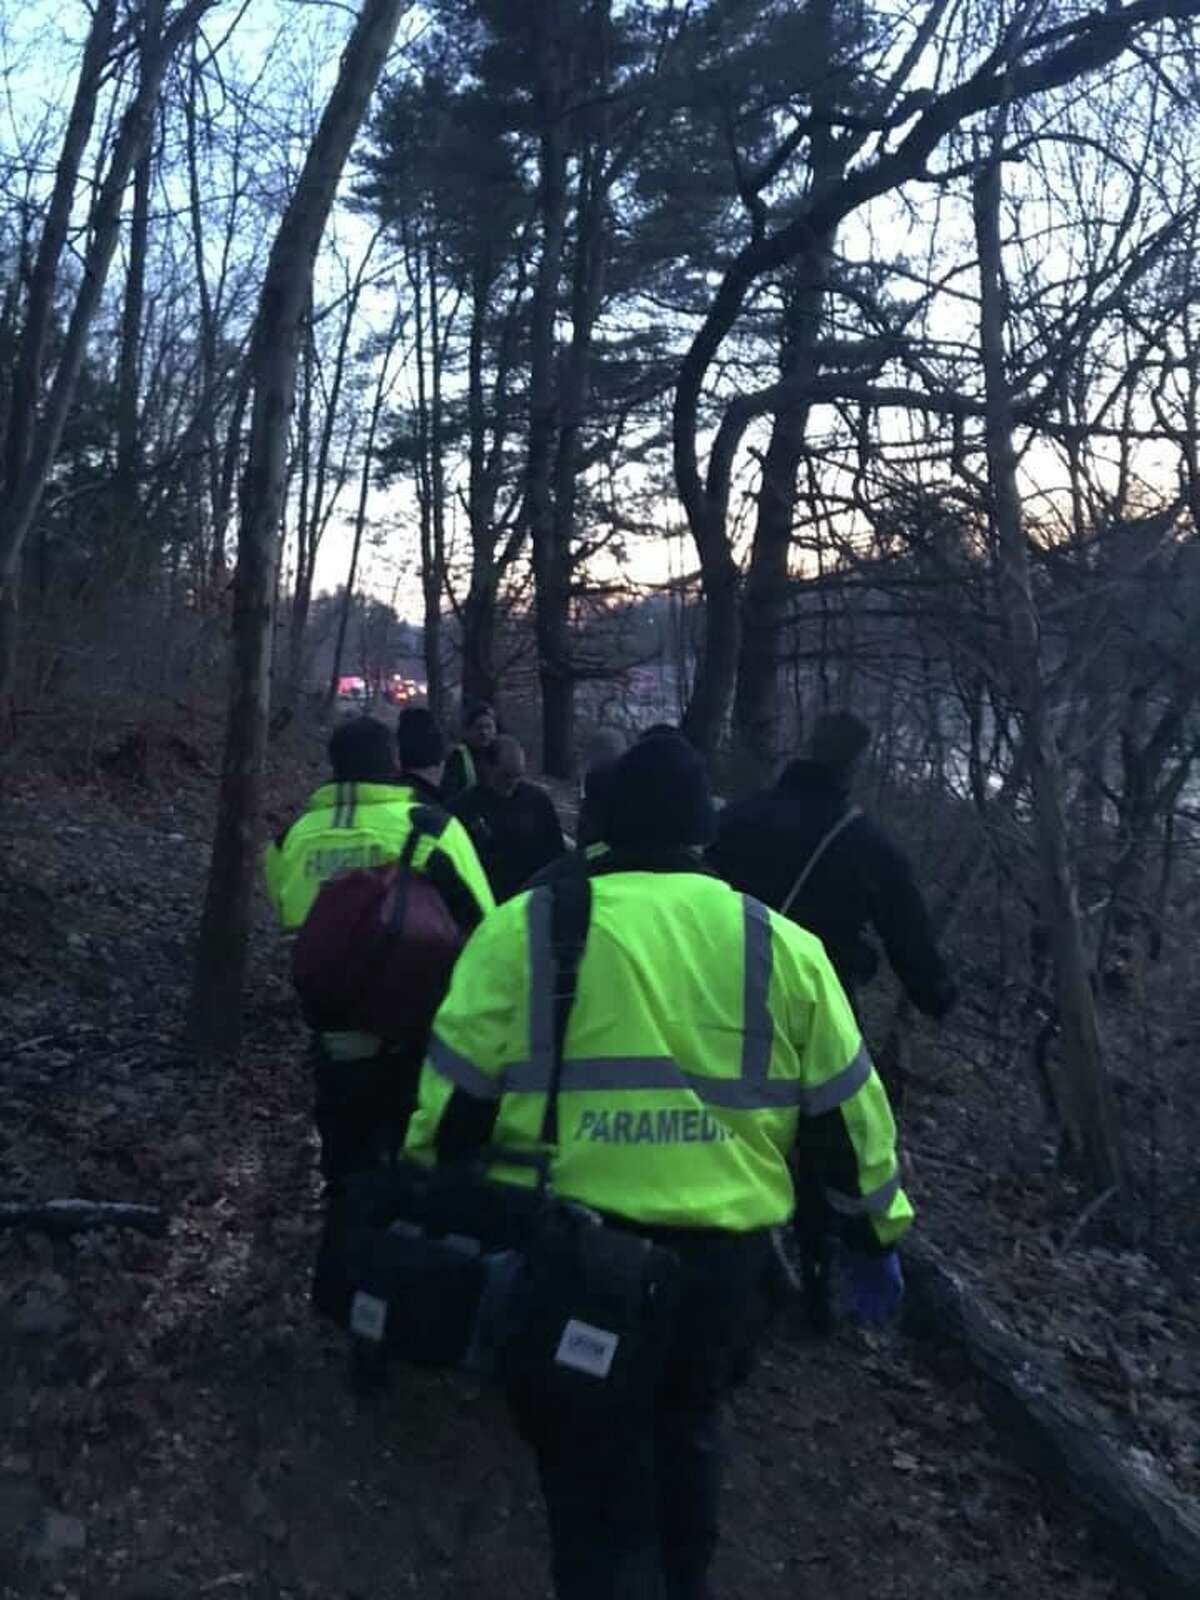 Firefighters and police officers rescued a man and his dog who fell through the ice at Lake Mohegan in Fairfield Sunday.